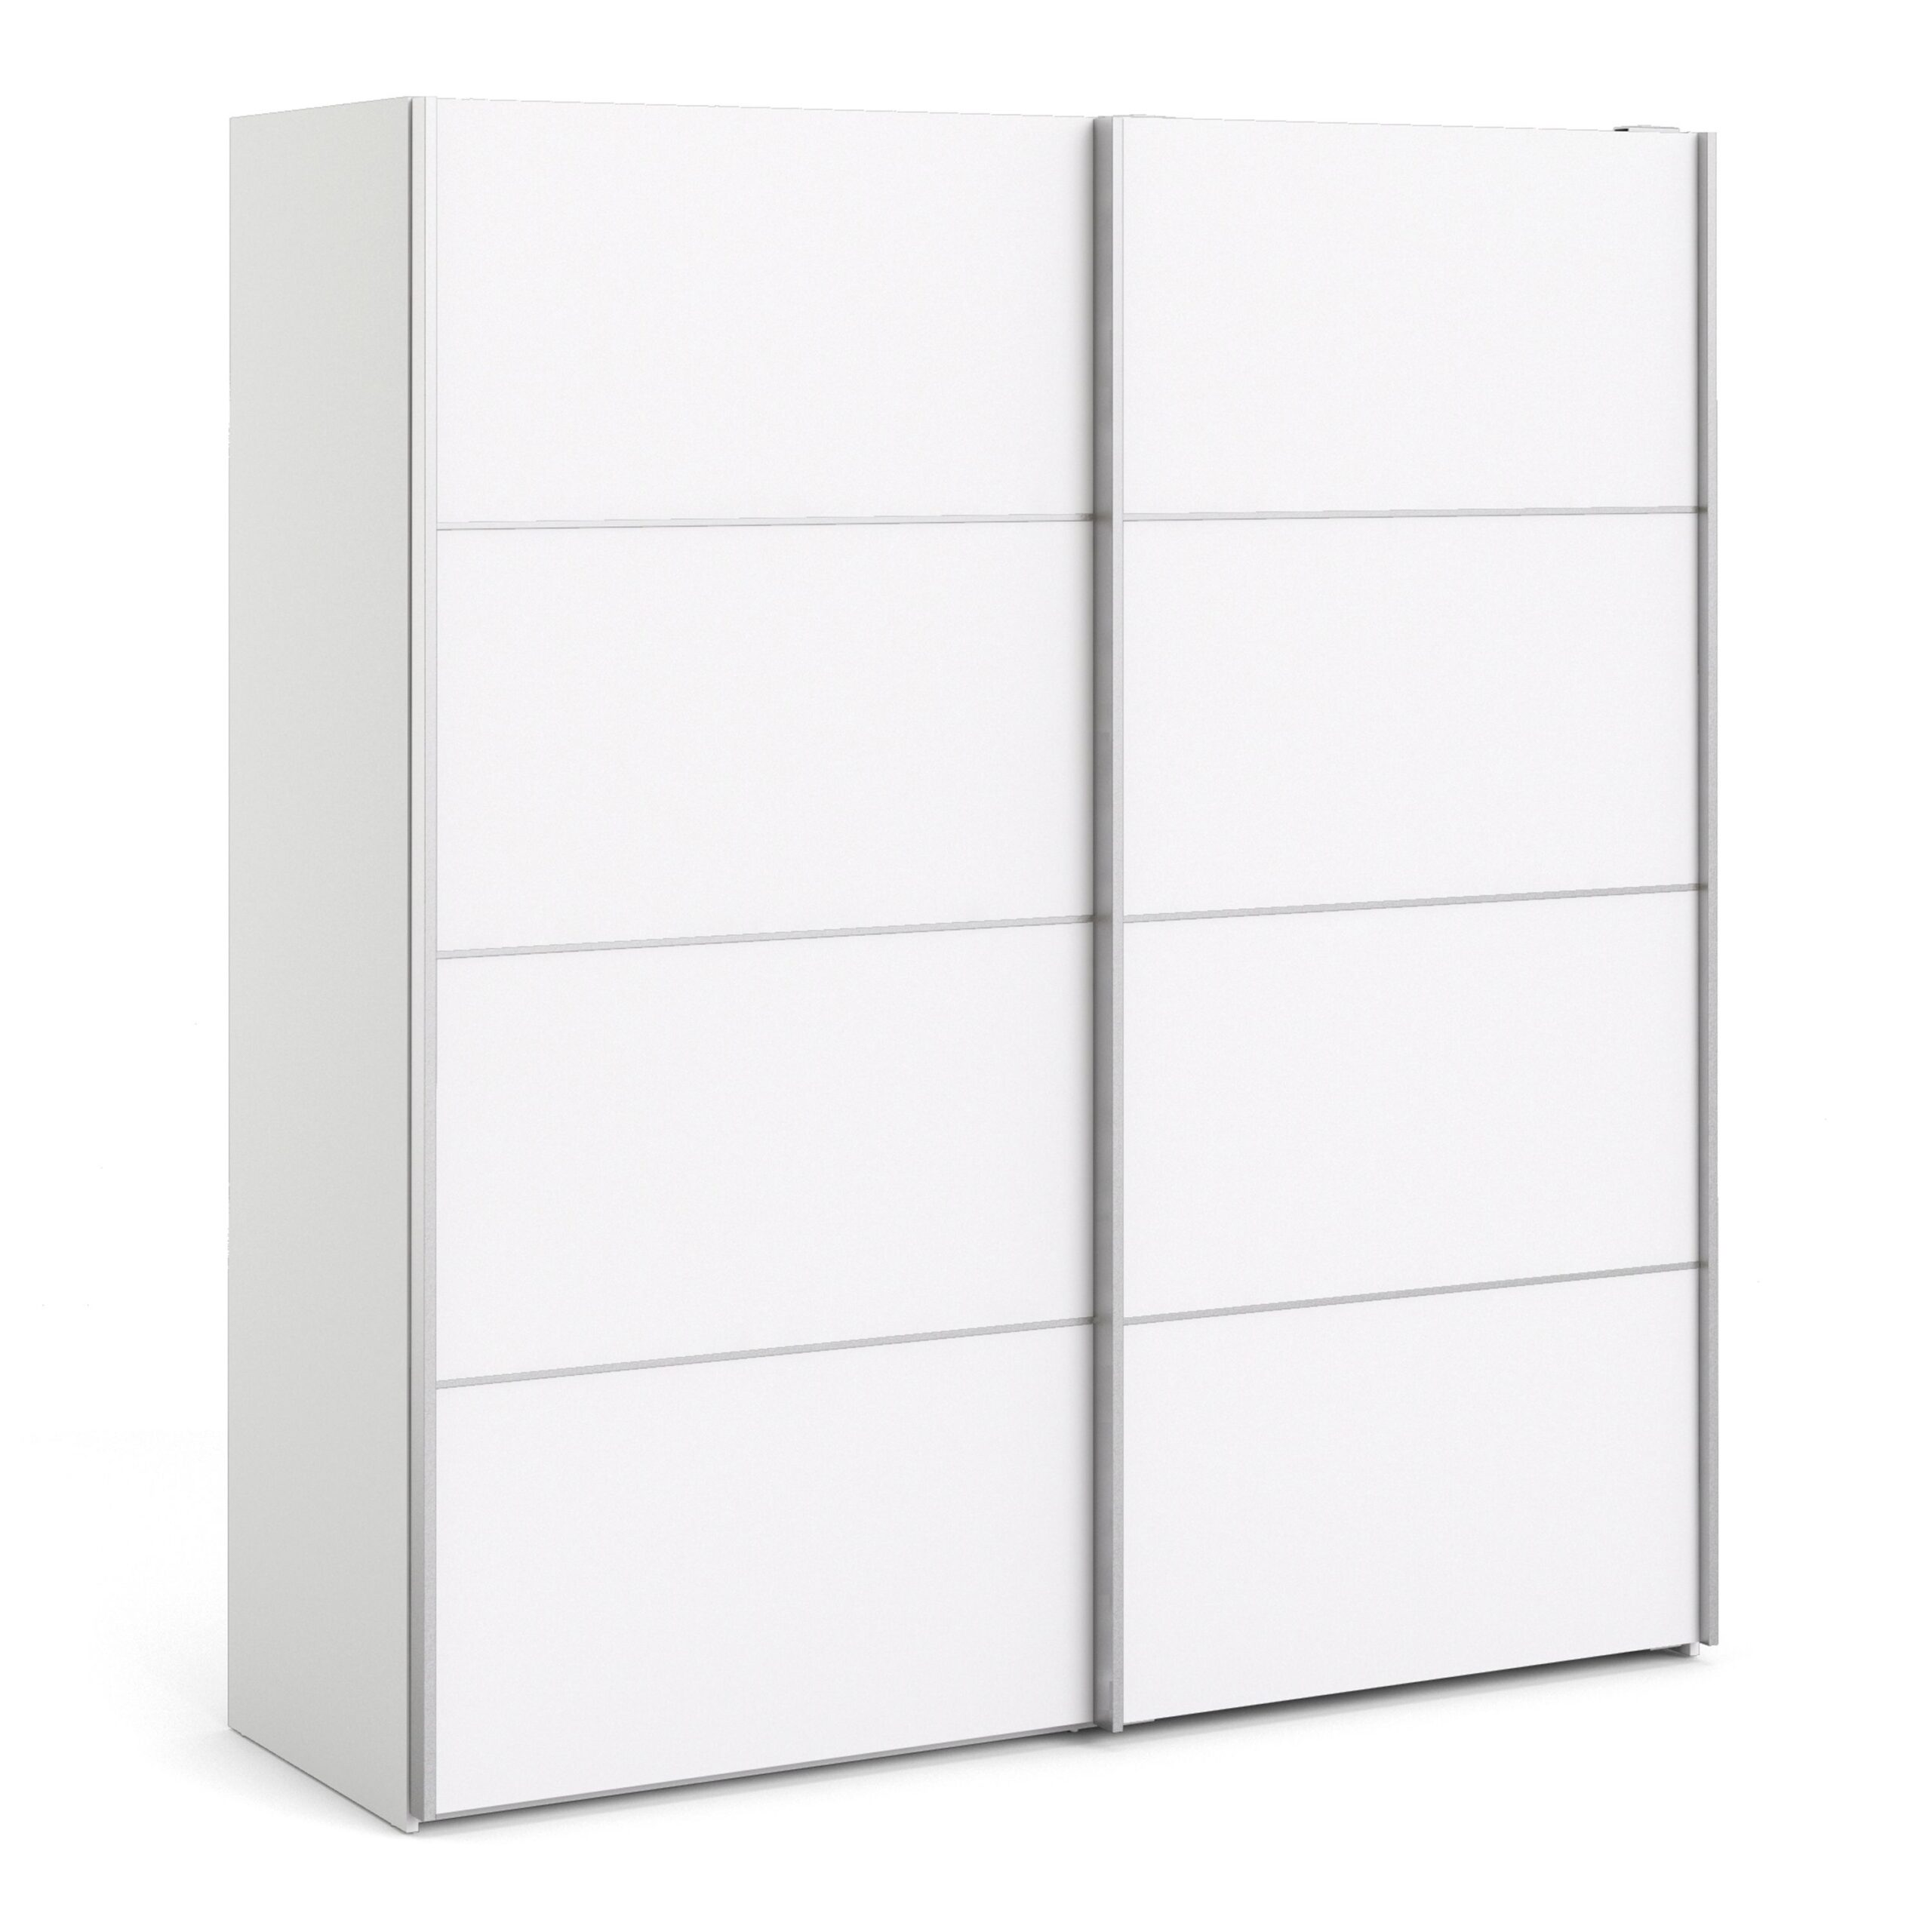 Phillipe Sliding Wardrobe 180cm in White with White Doors with 2 Shelves